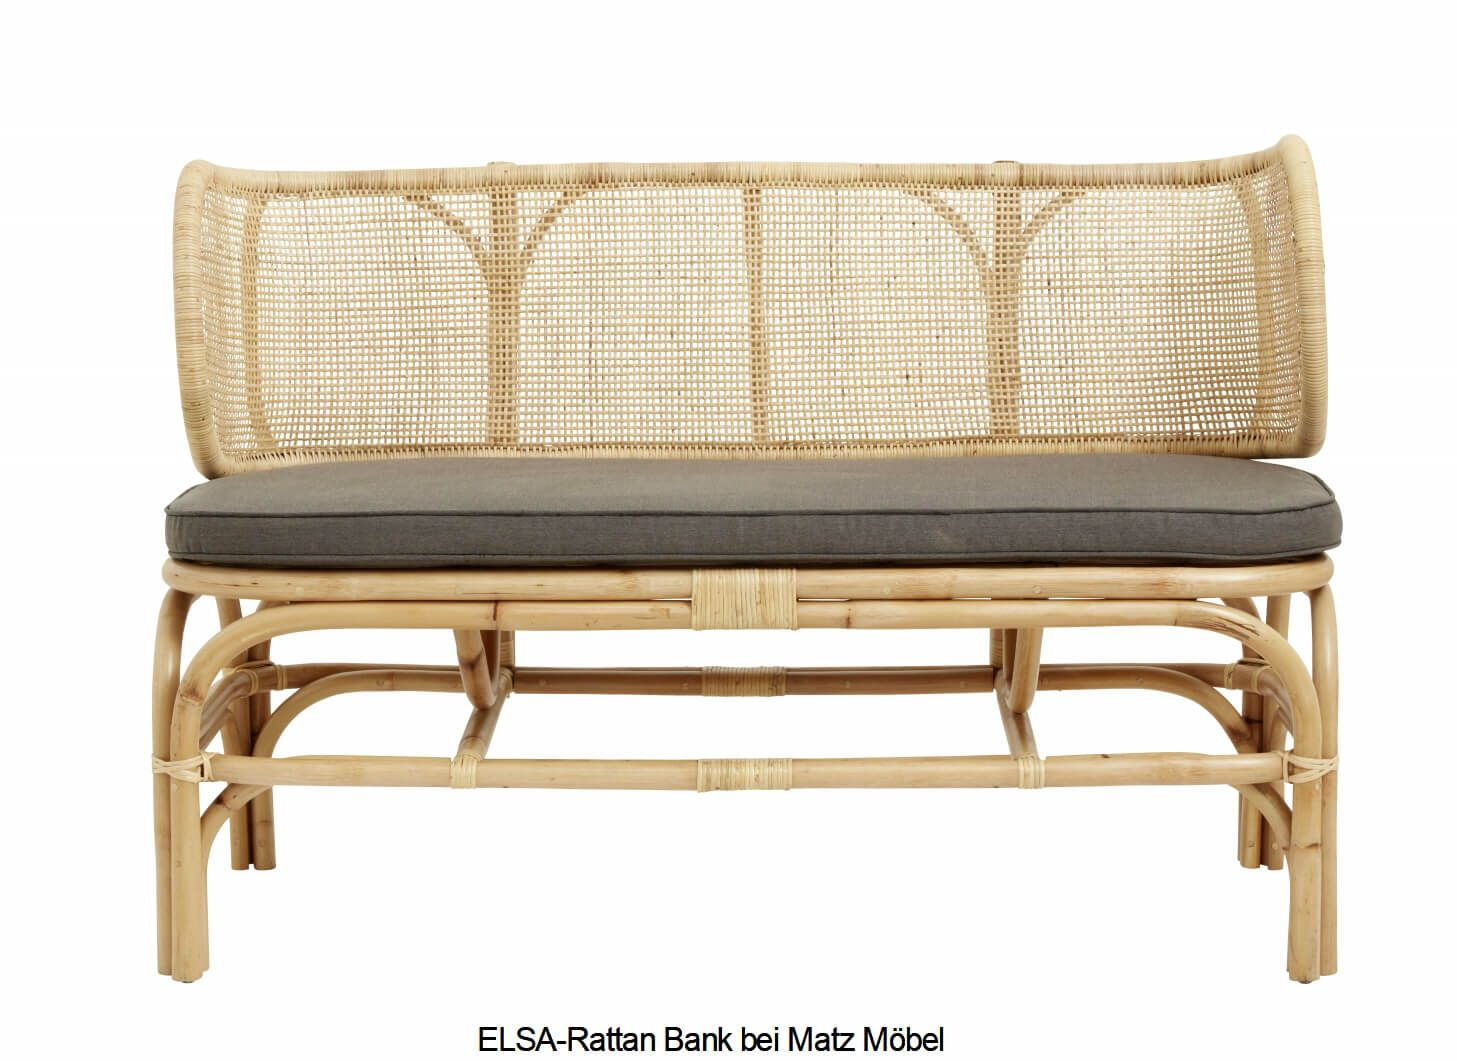 Elsa Rattan Bank Retro Mobel In 2020 Retro Mobel Rattan Bank Kleine Couch